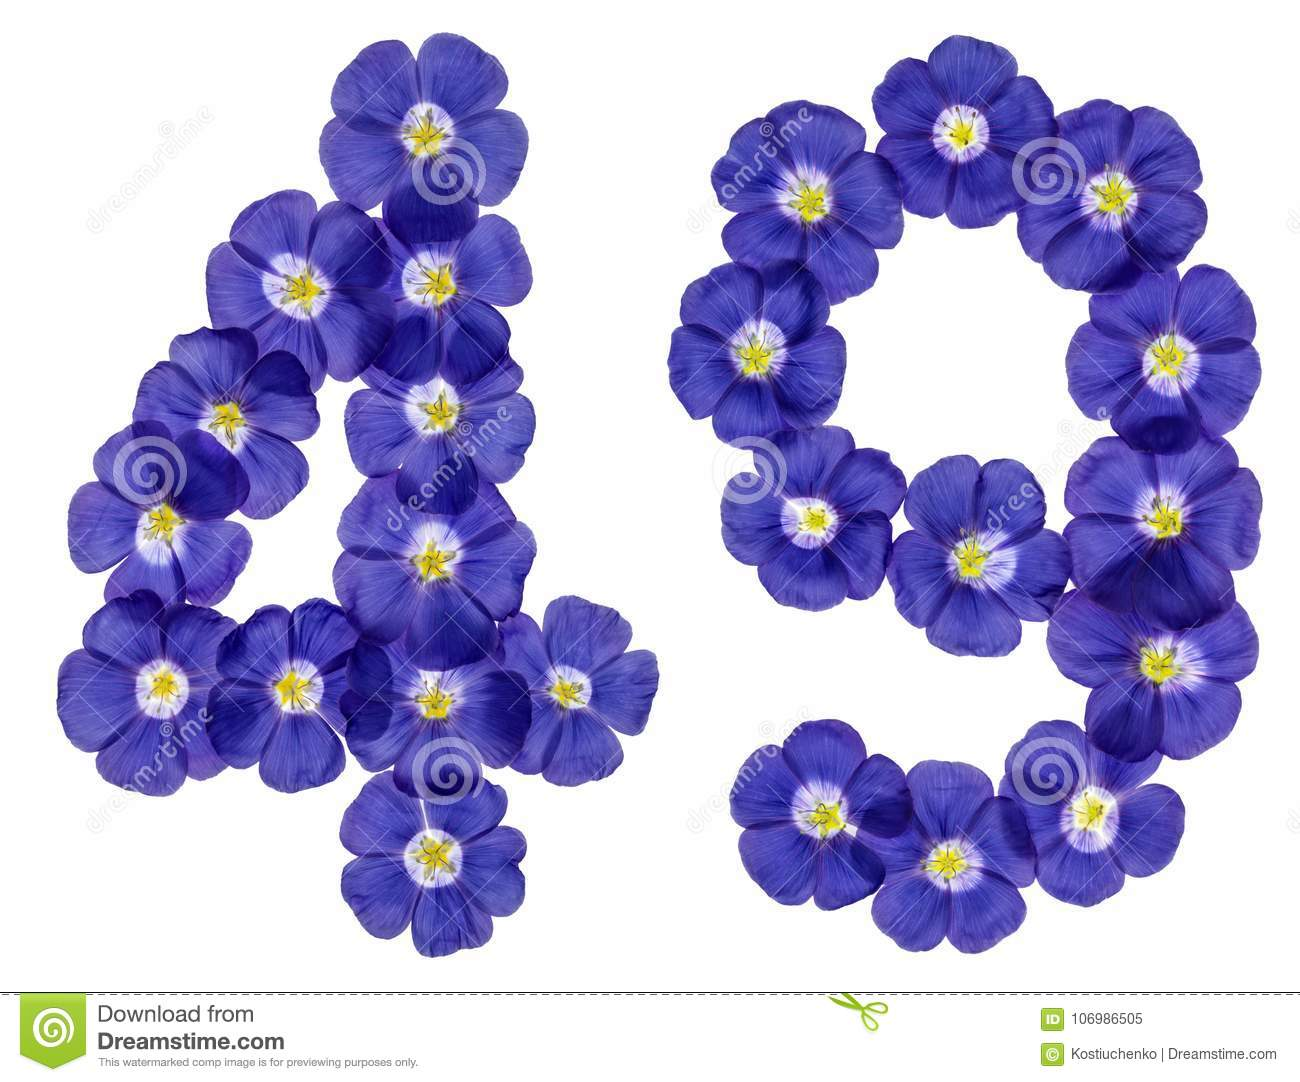 Arabic numeral 49, forty nine, from blue flowers of flax, isolated on white background